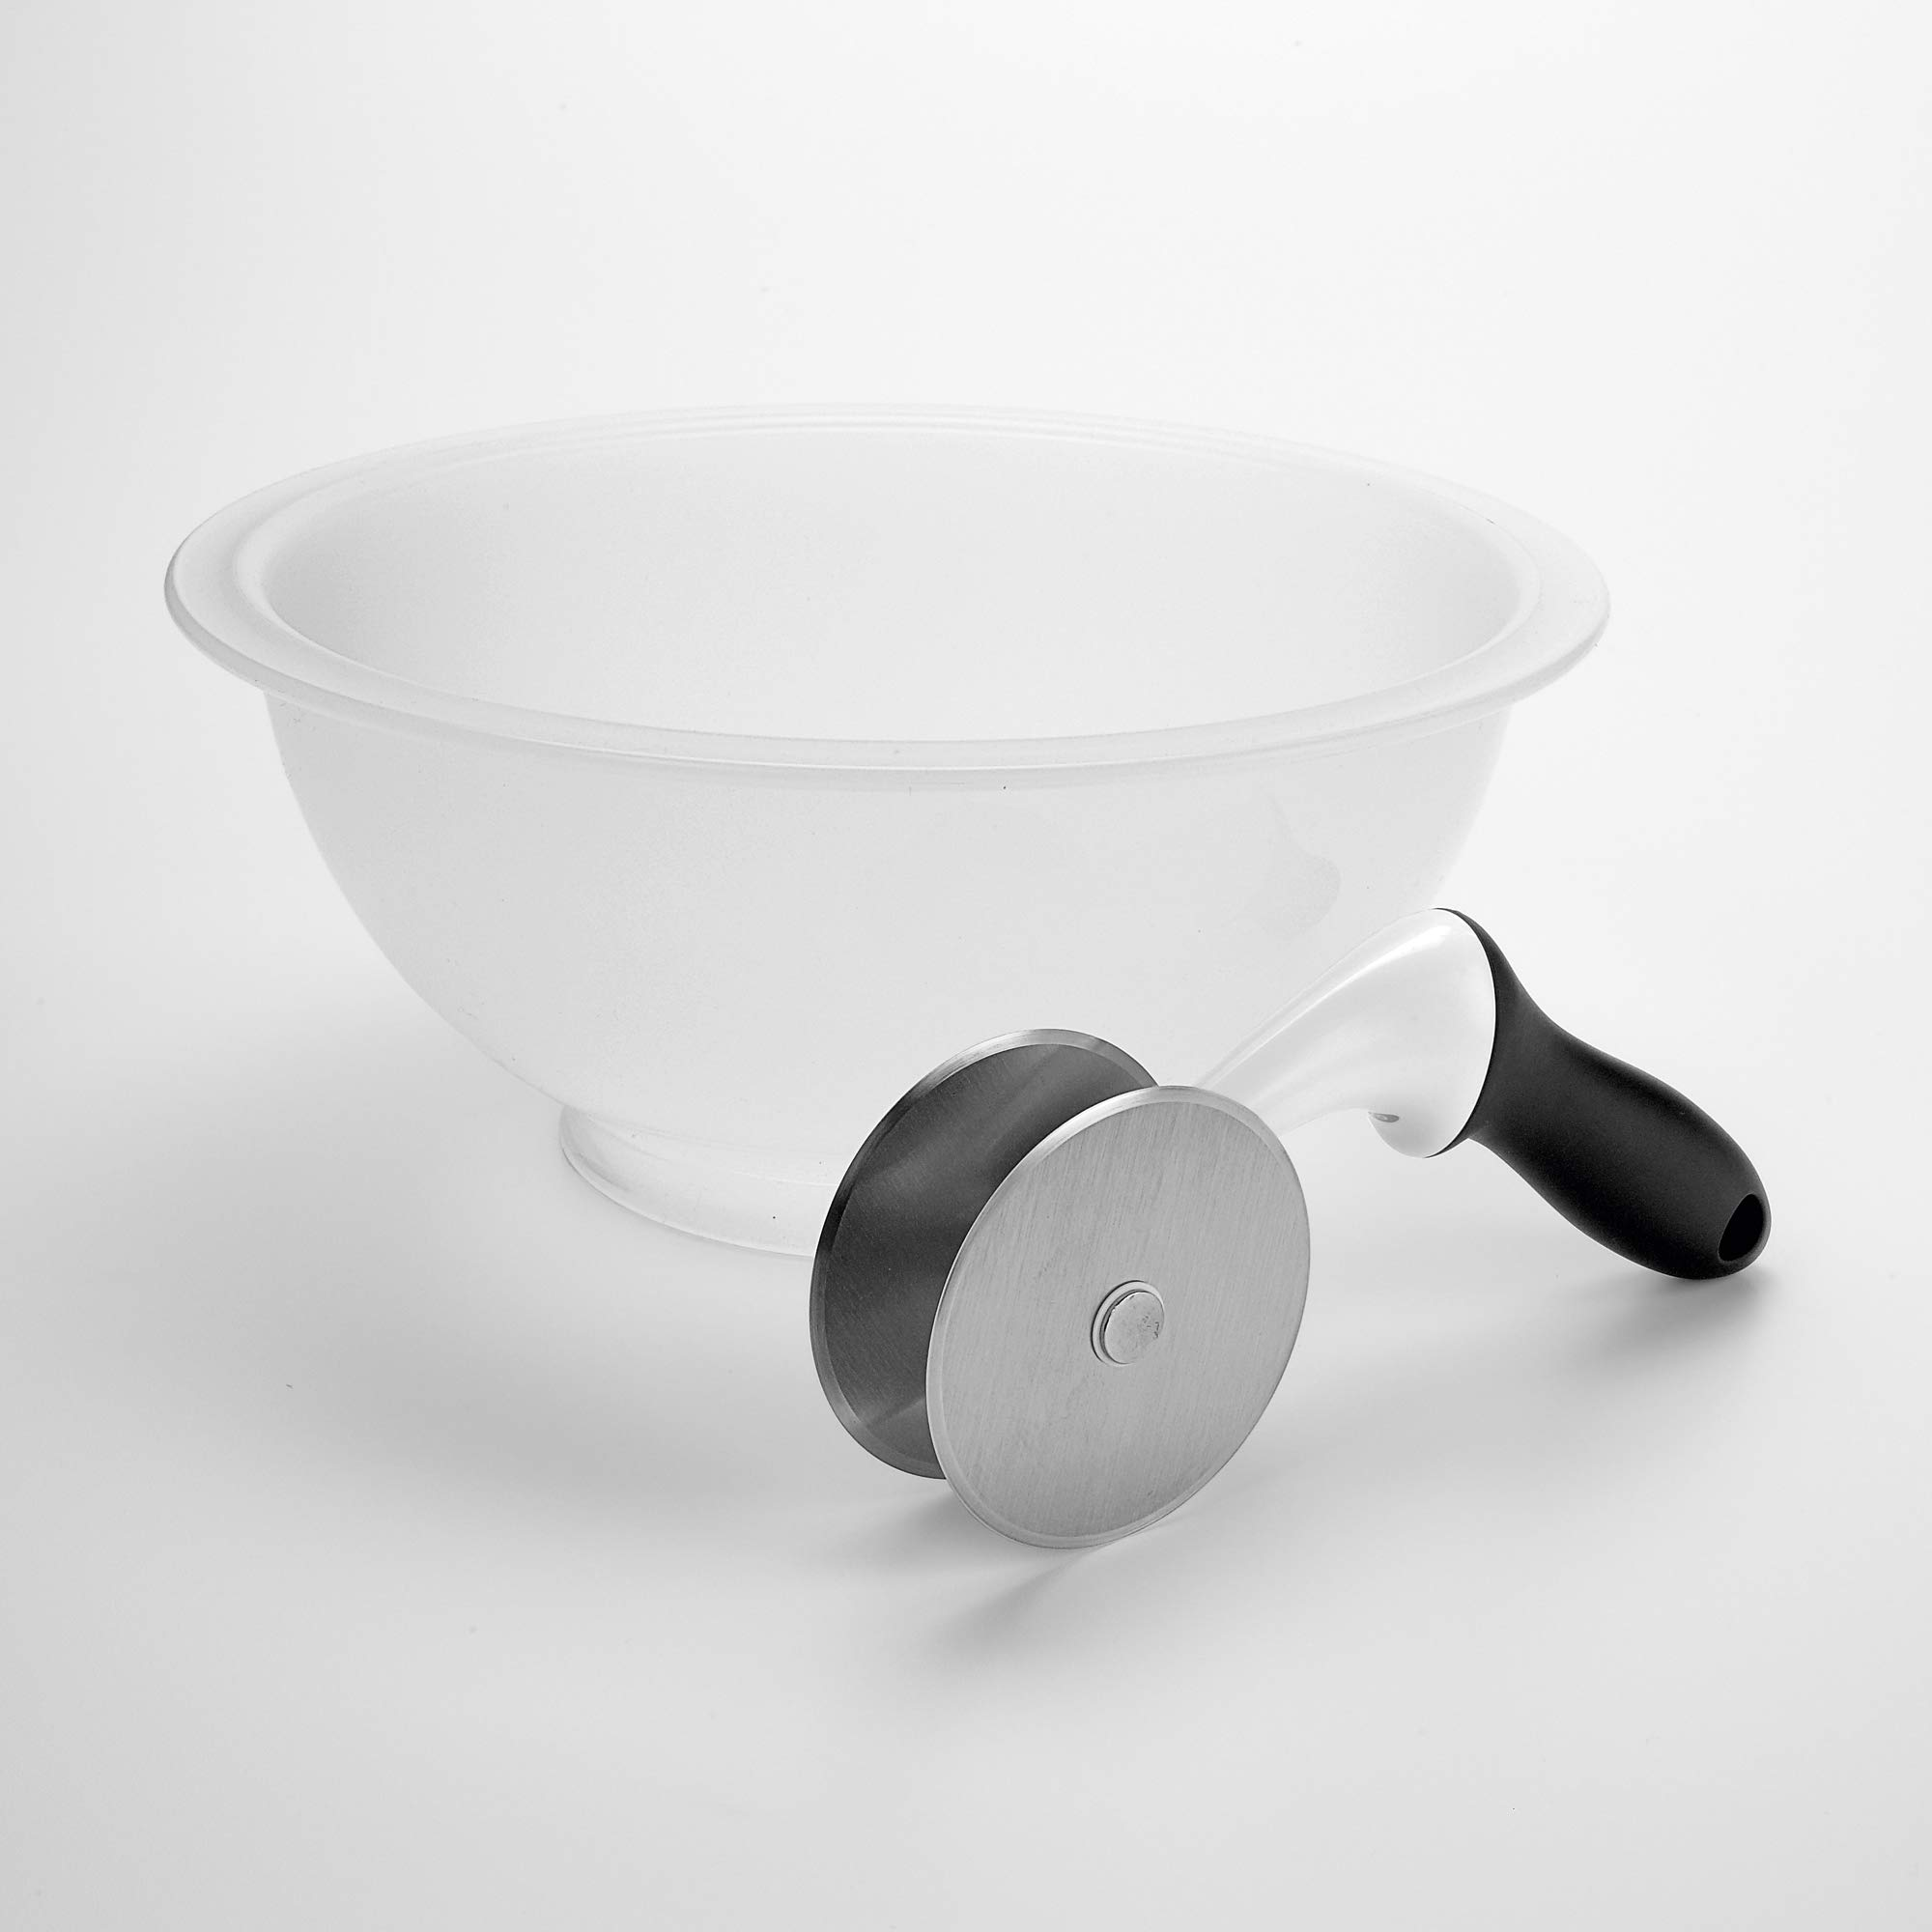 OXO Good Grips Salad Chopper and Bowl by OXO